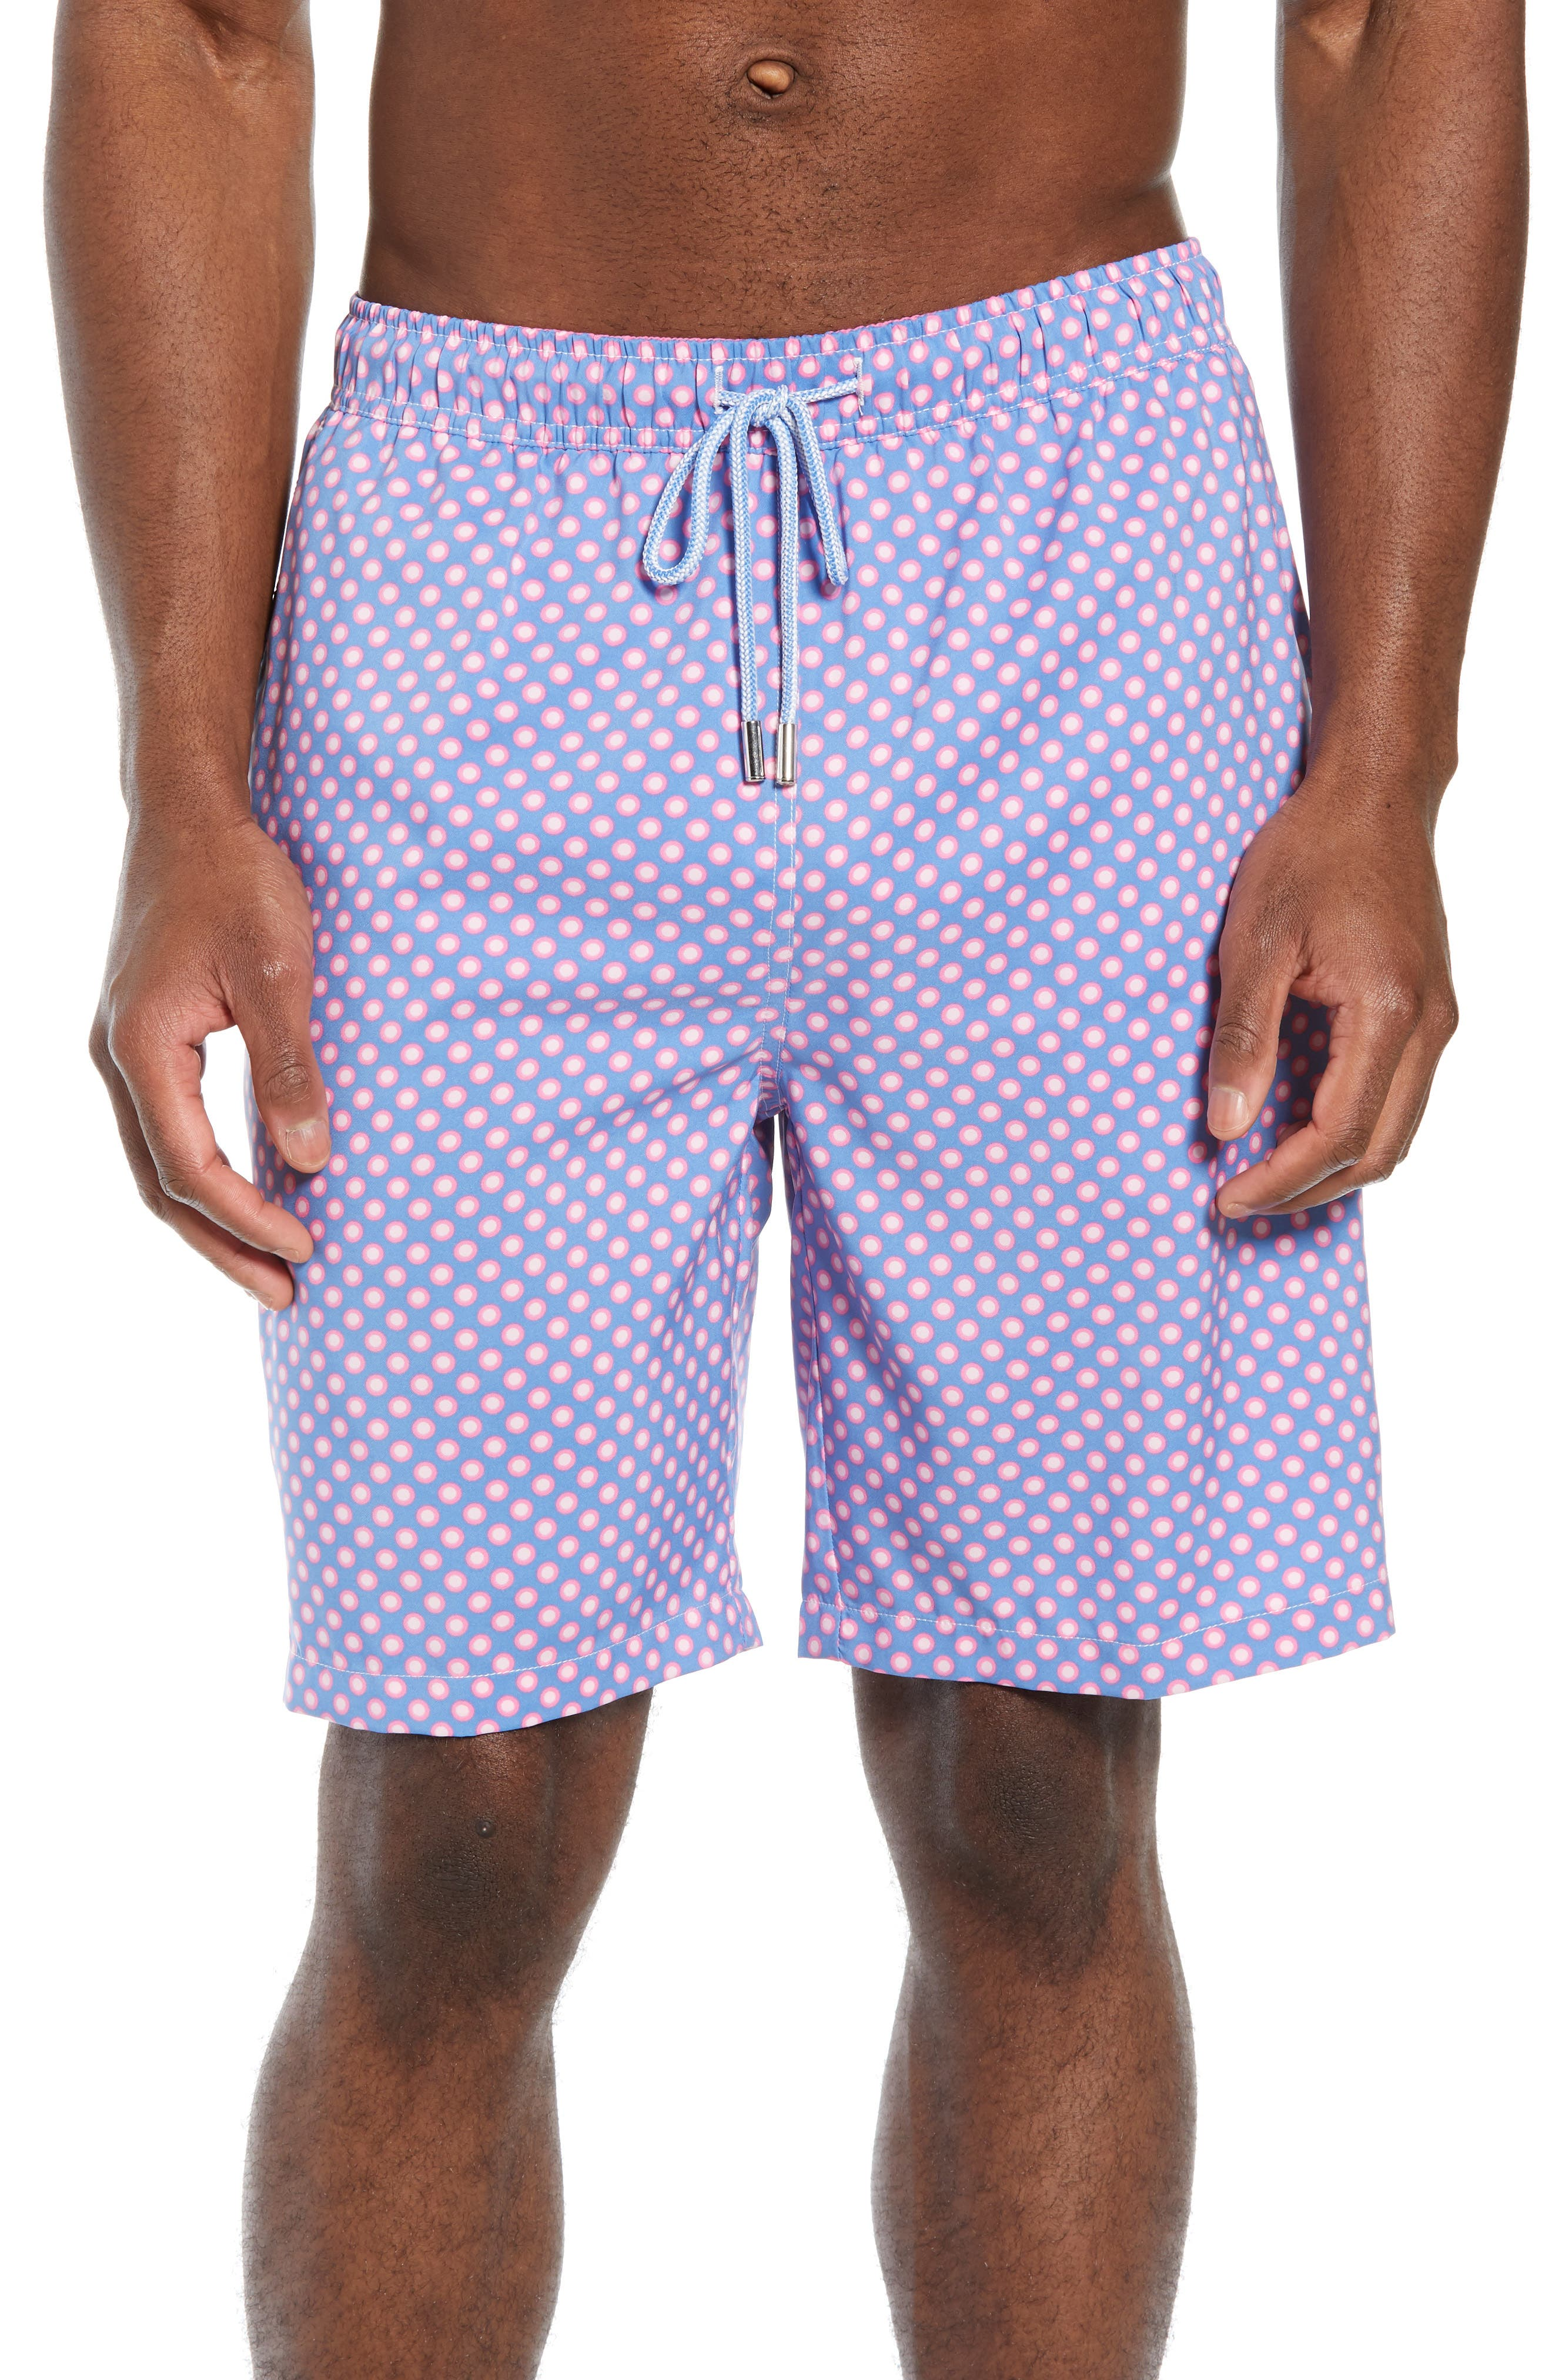 Peter Millar Polka Spots Swim Trunks, Blue